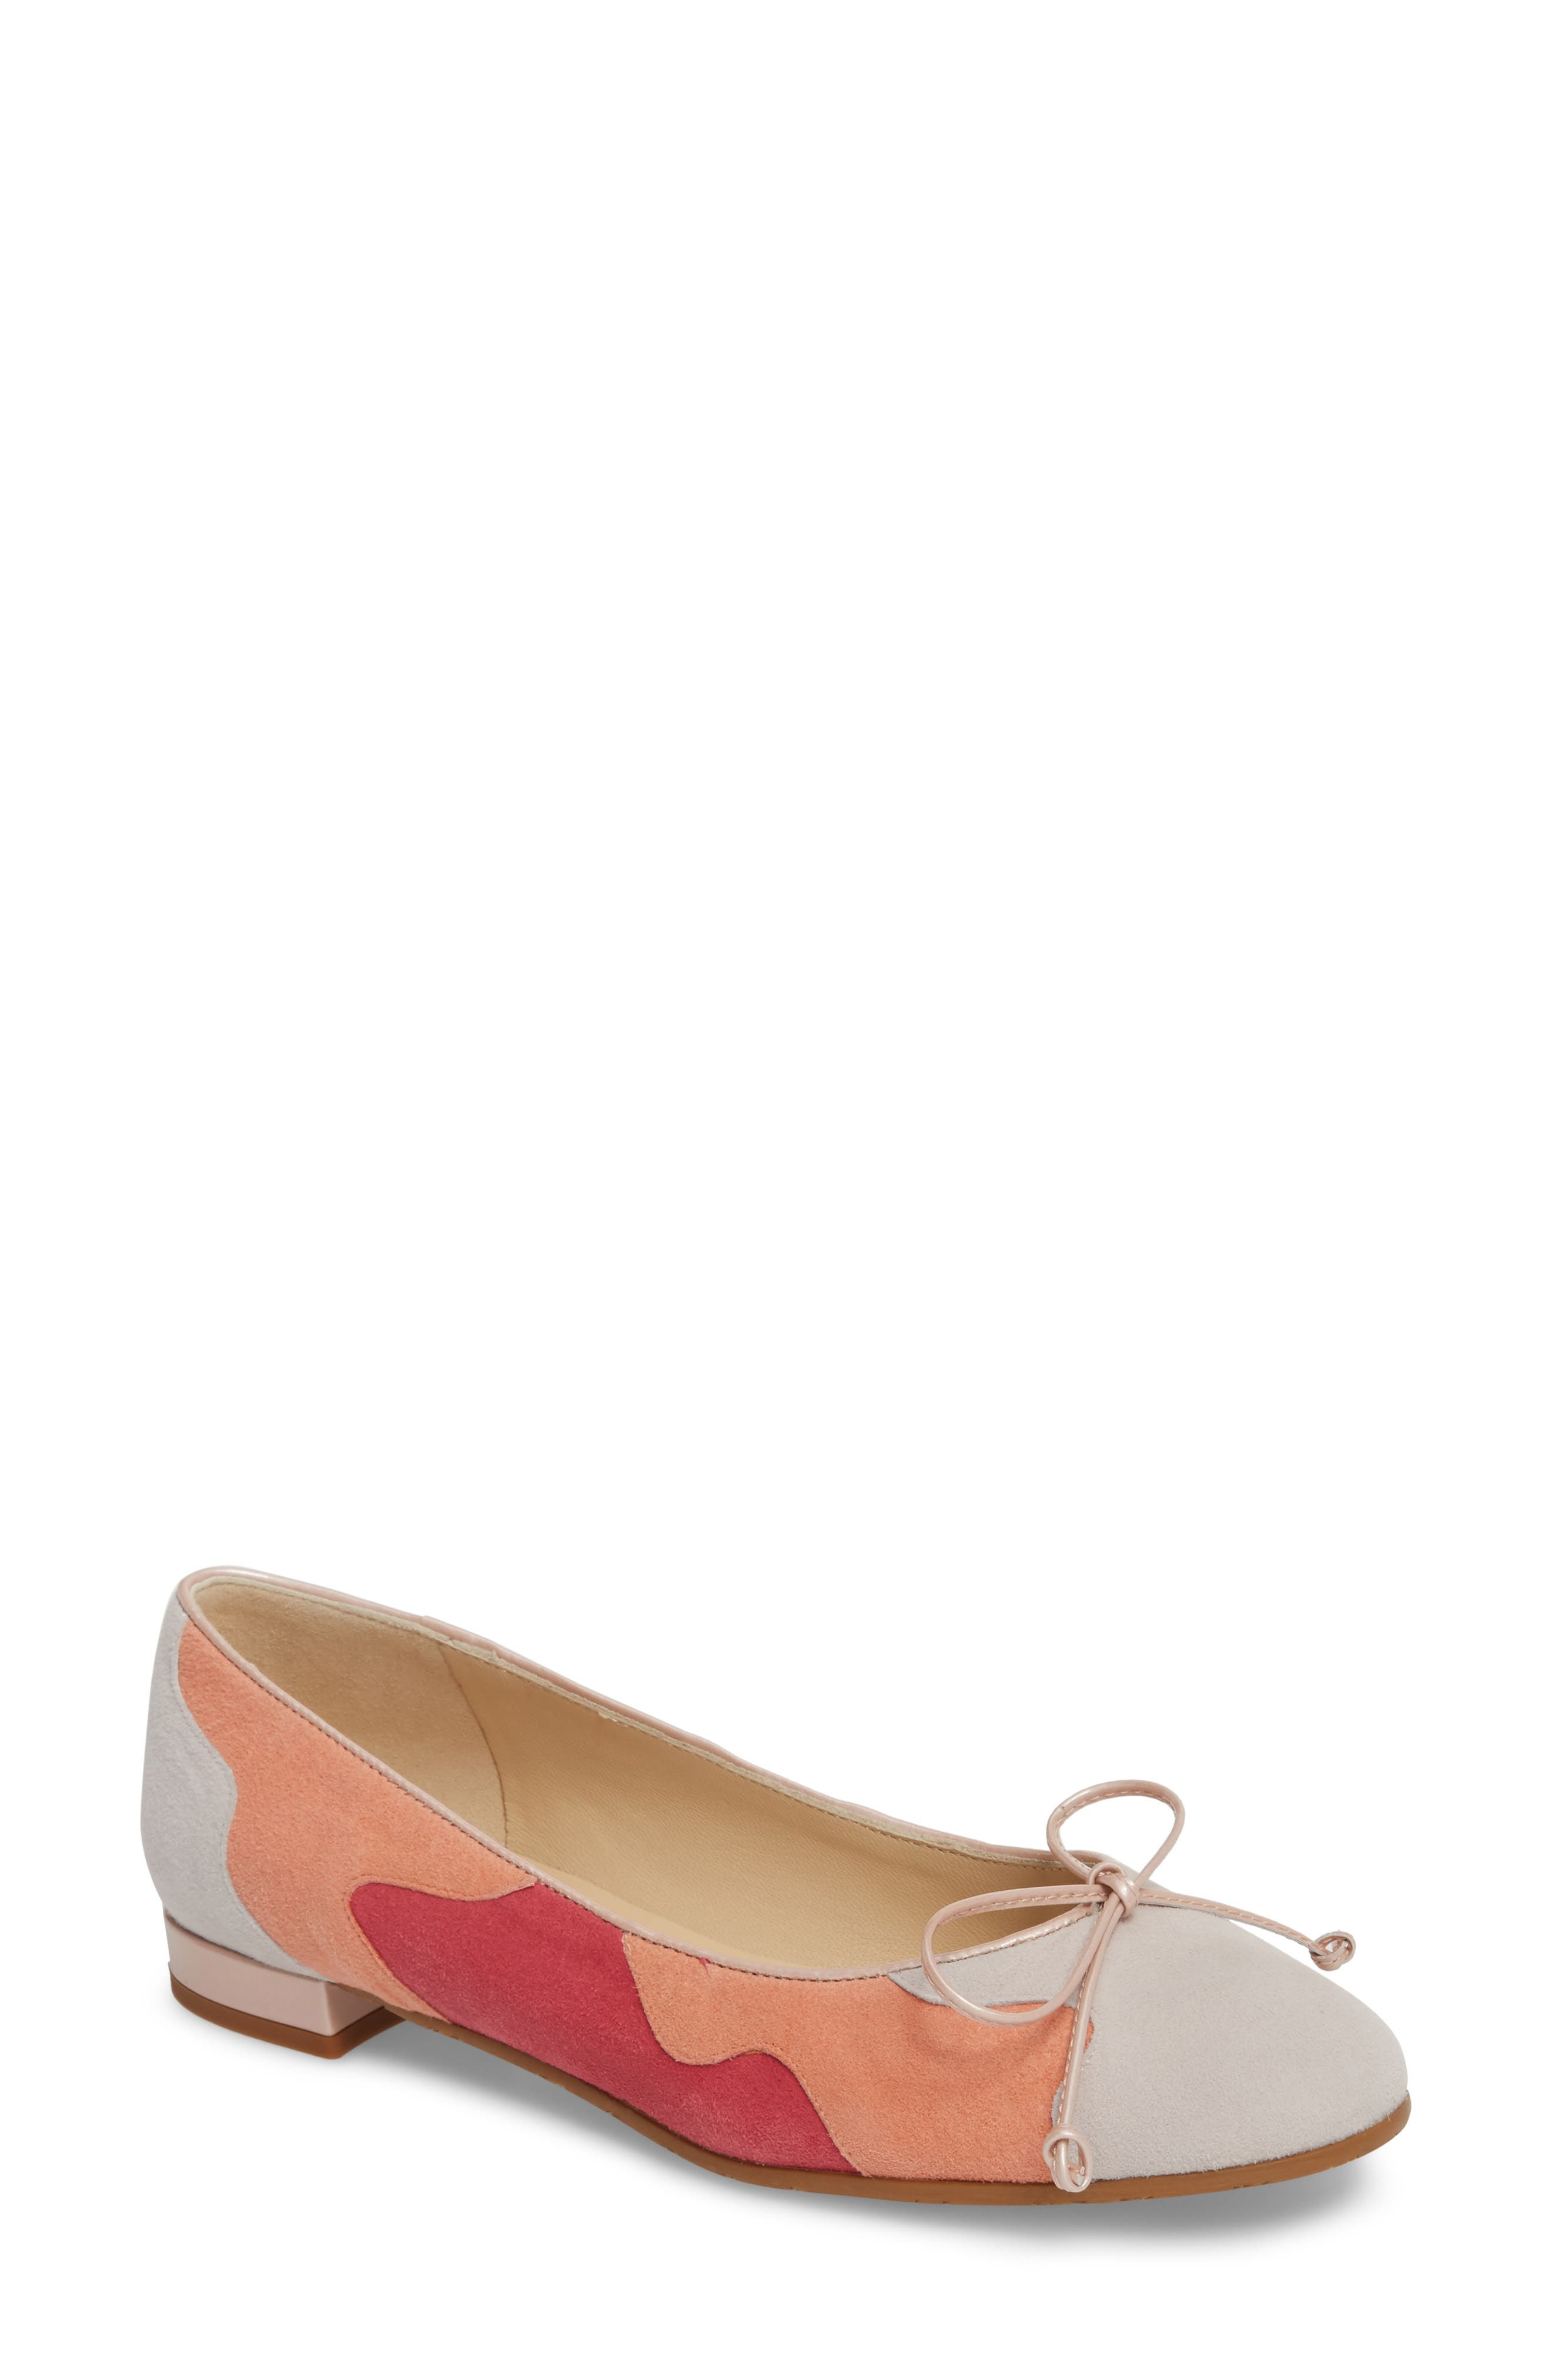 Ginevra Flat,                             Main thumbnail 1, color,                             BEIGE SUEDE